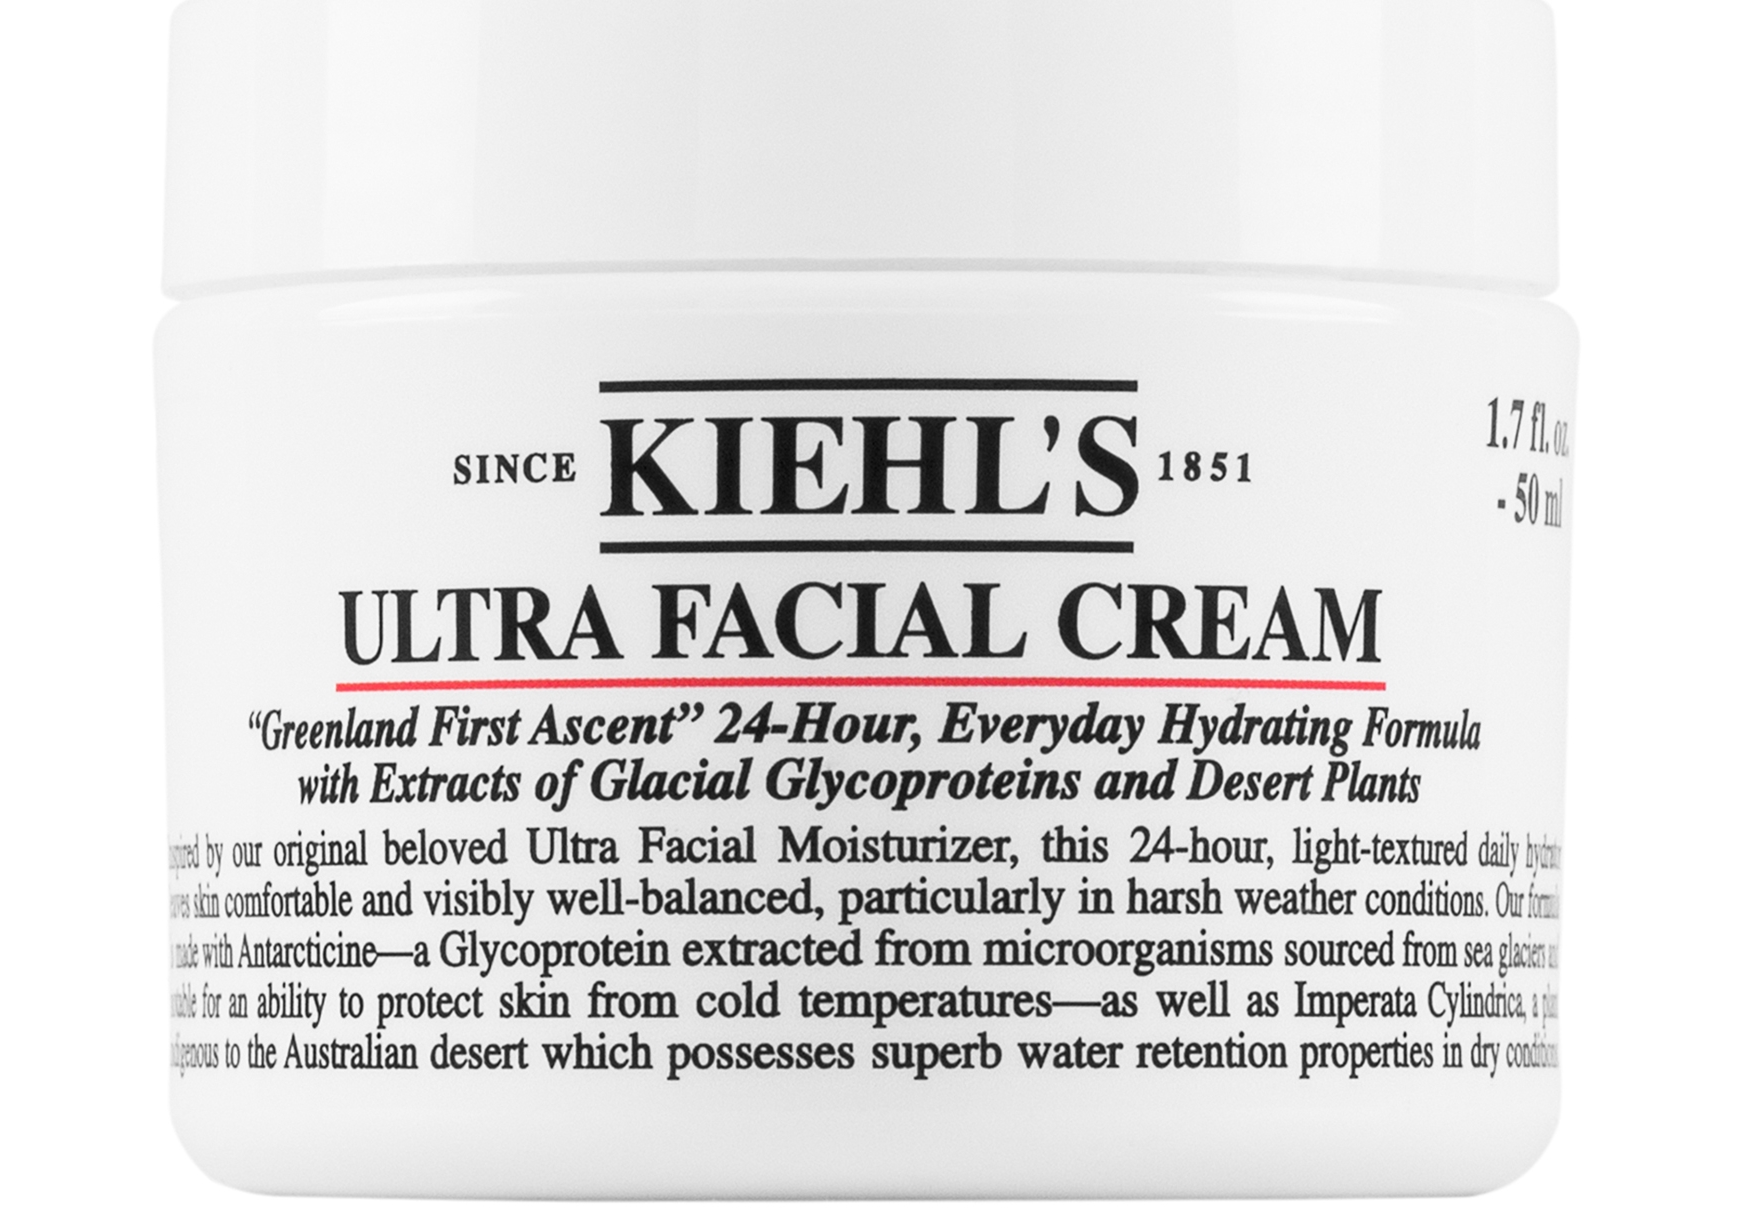 Kiehls Ultra Facial Cream - Top 15 Picks from Nykaa Luxe Store - Best Skin Care Products for Anti-Aging, Fairness & De-Tan